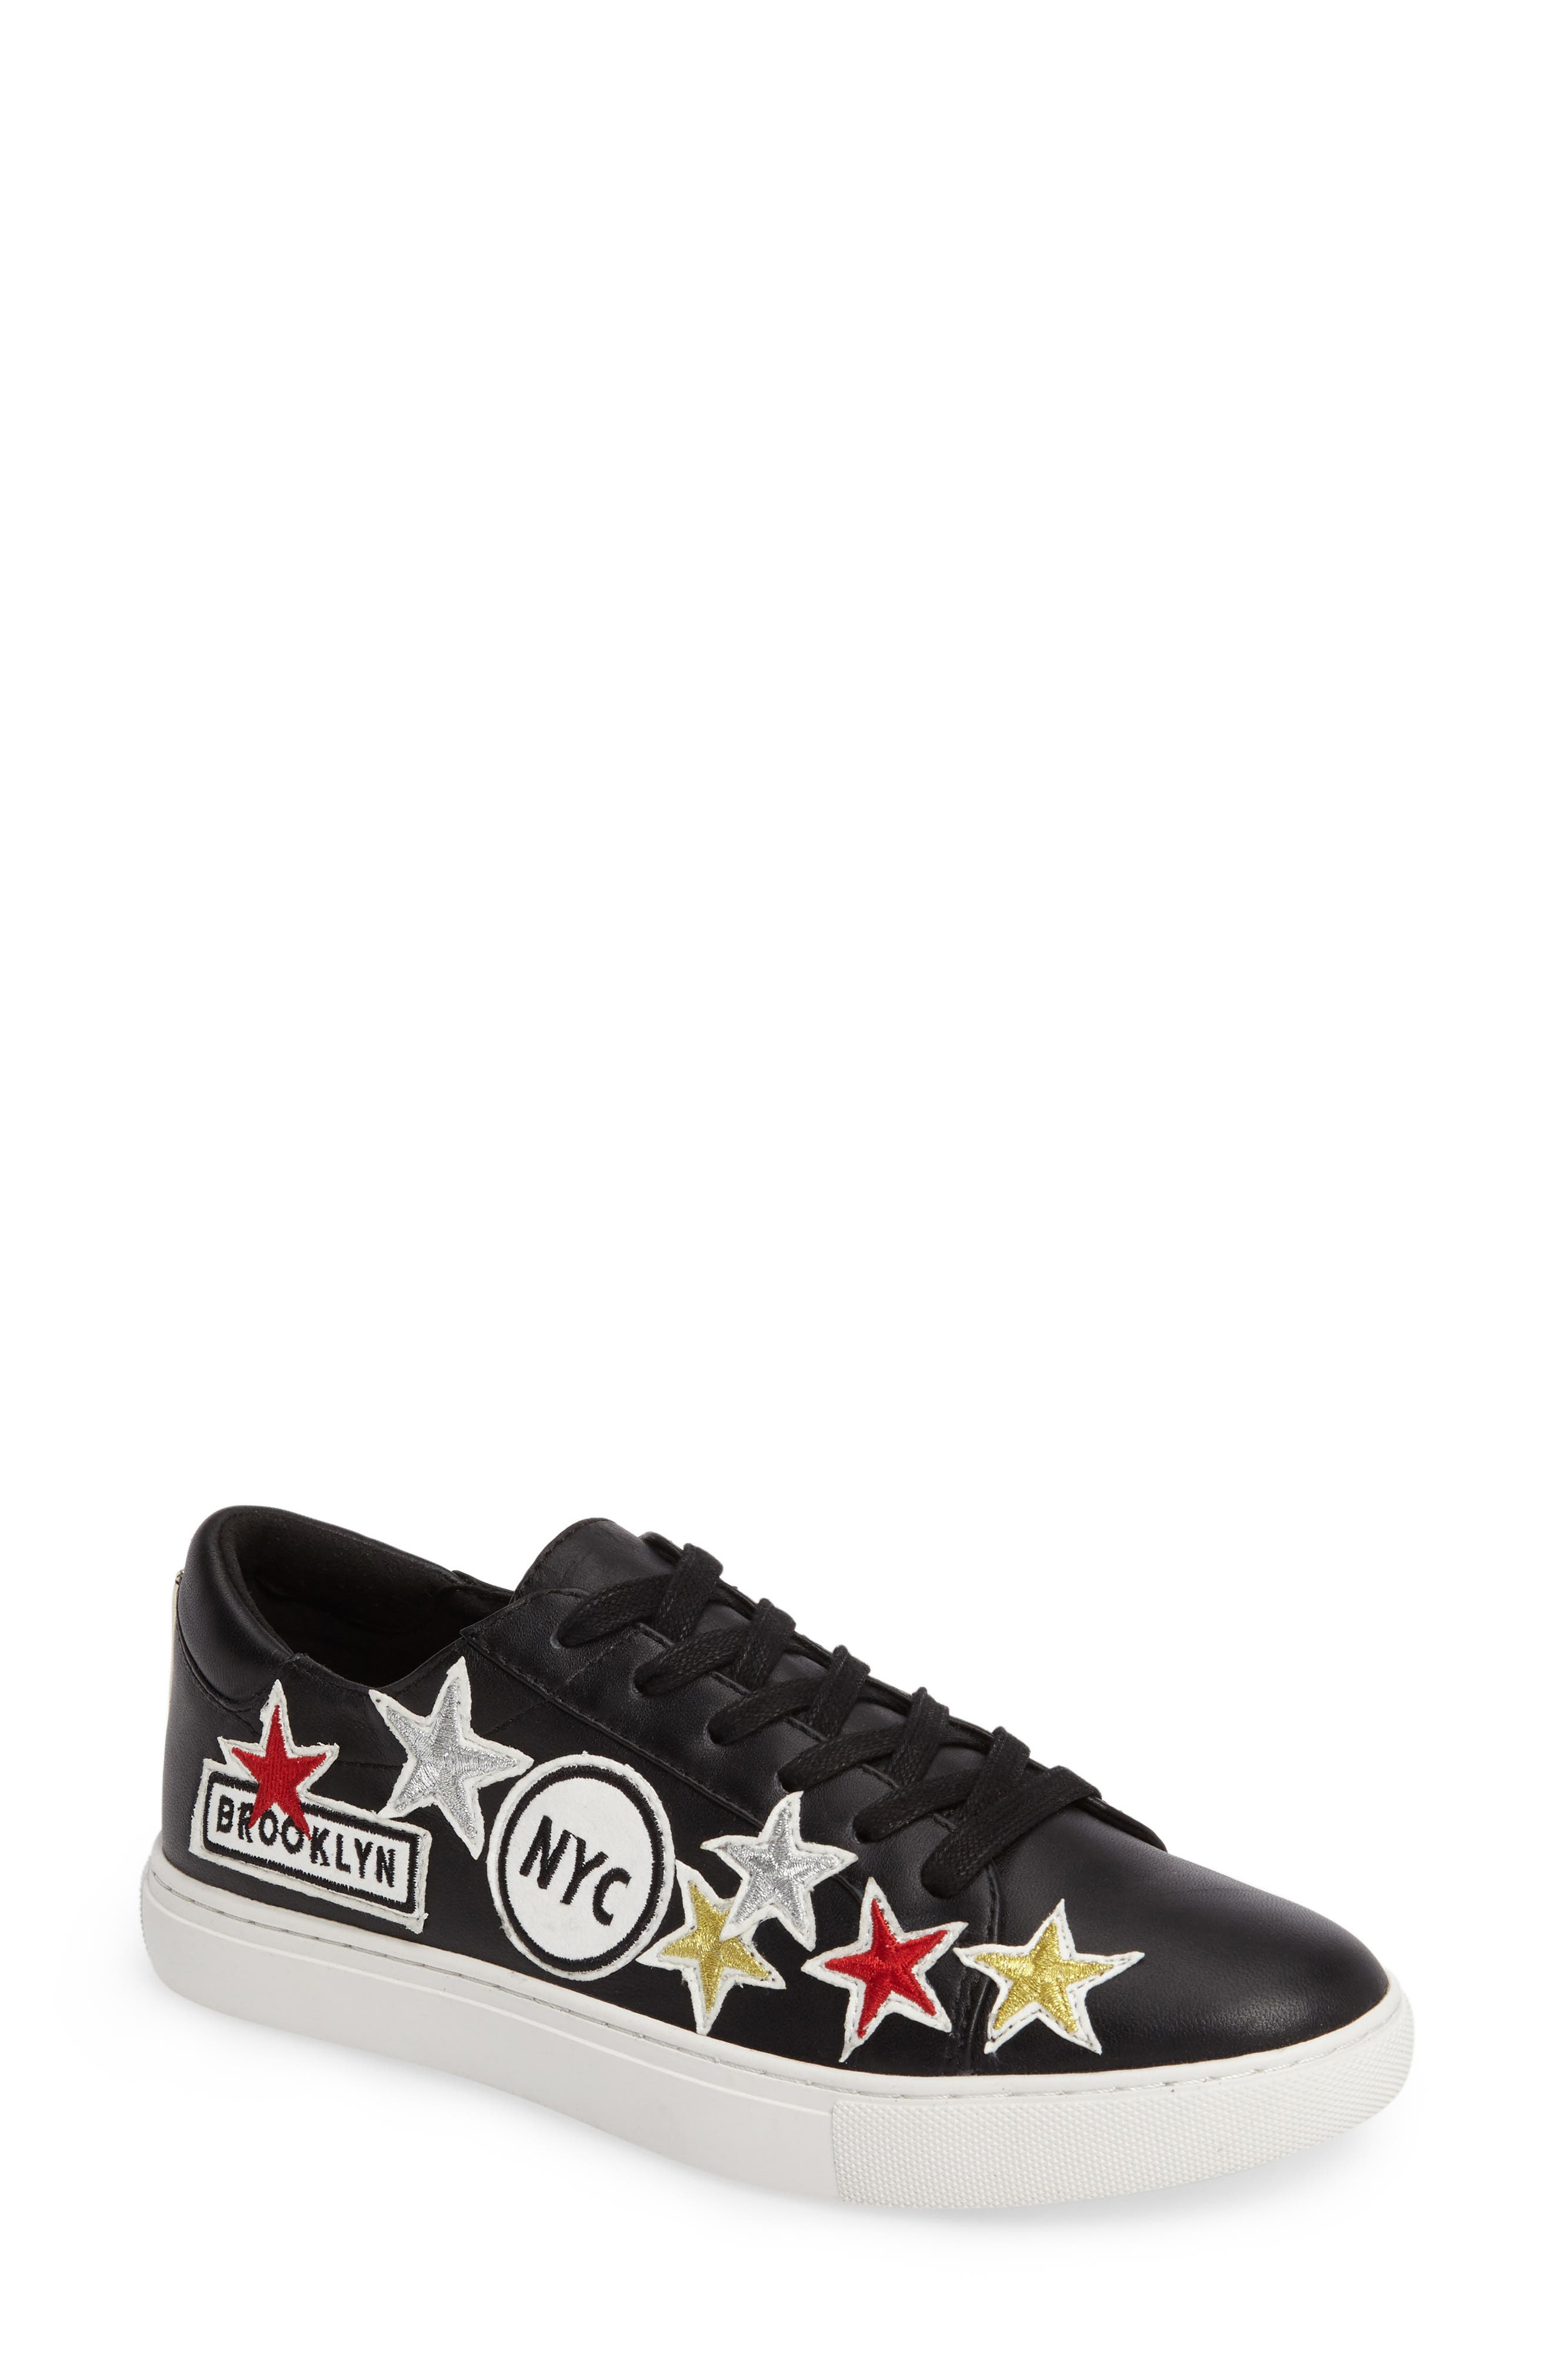 Kam NYC Sneaker,                         Main,                         color, Black Leather